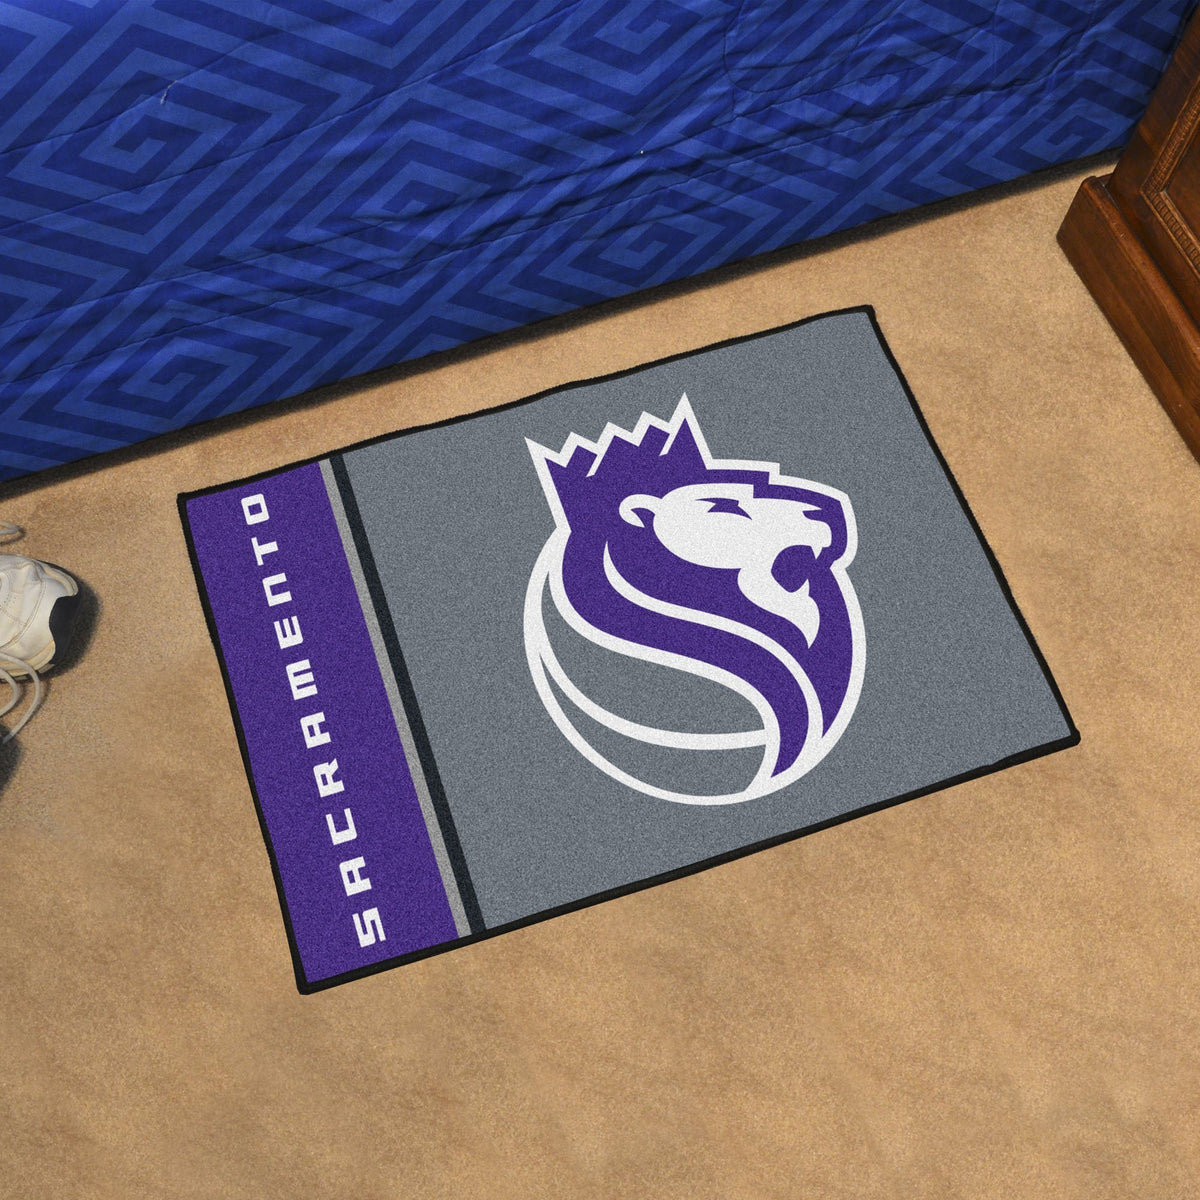 NBA - Uniform Starter Mat NBA Mats, Rectangular Mats, Uniform Starter Mat, NBA, Home Fan Mats Sacramento Kings